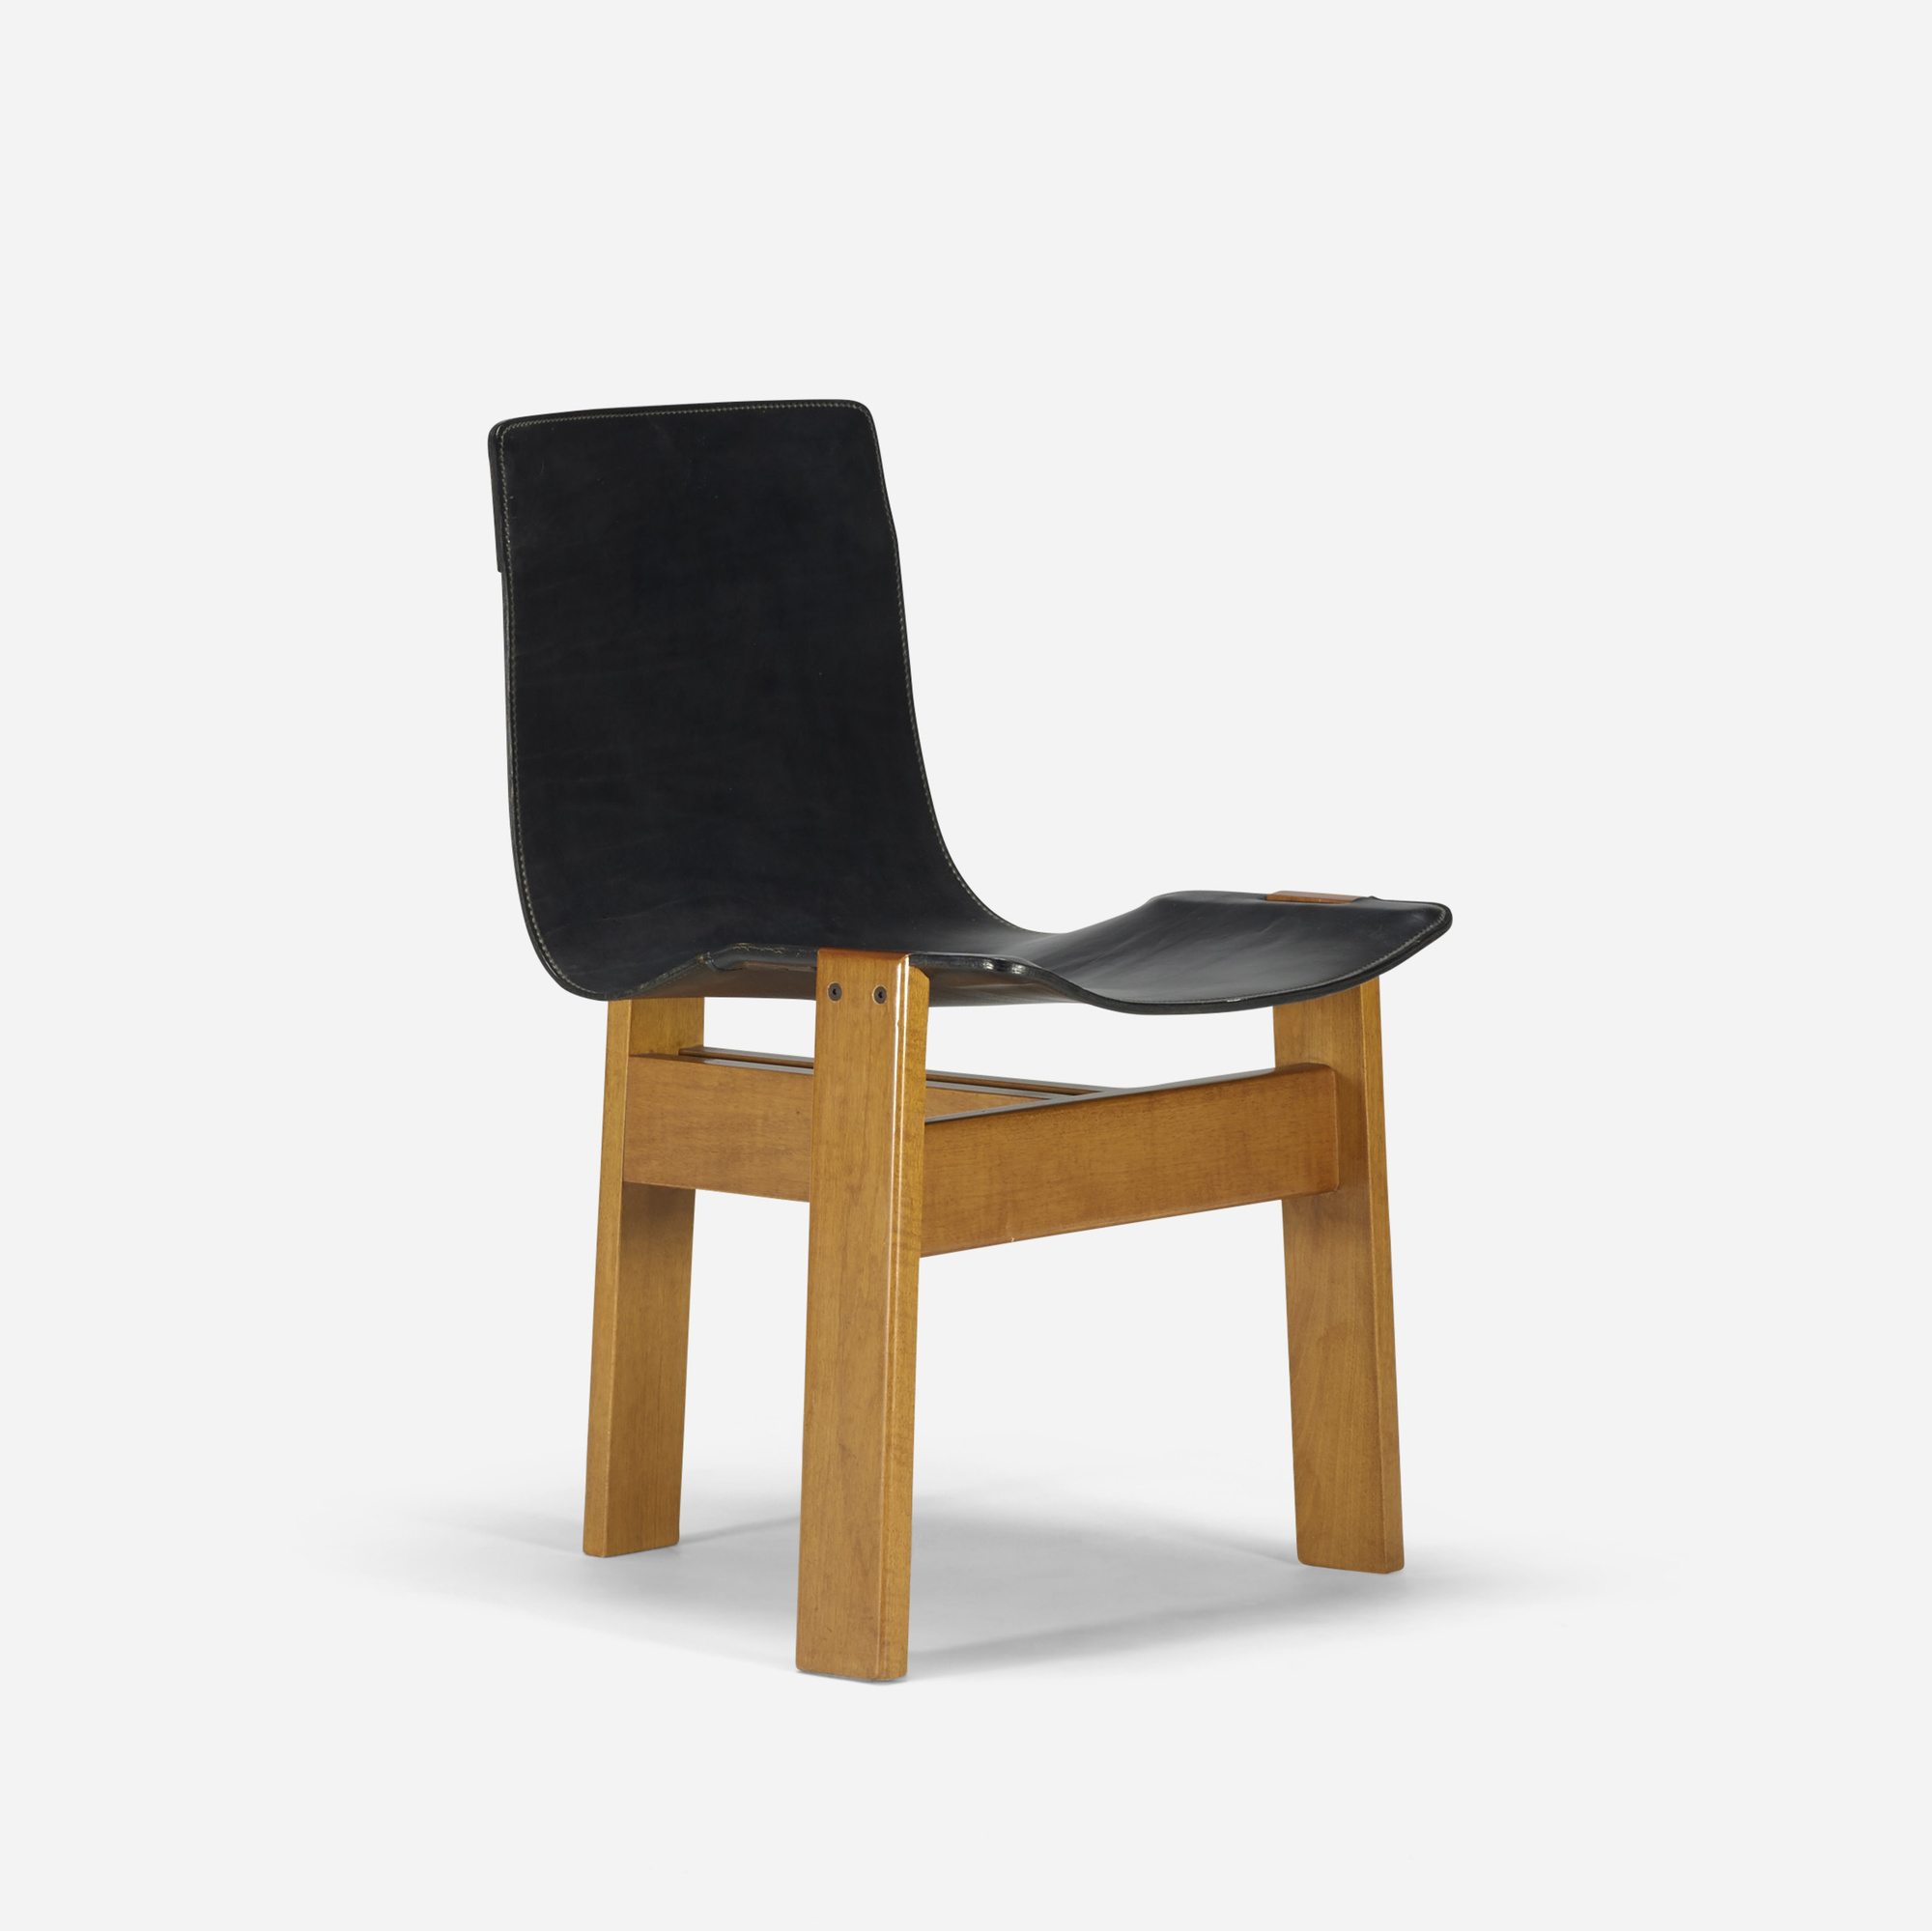 526: Angelo Mangiarotti / Tre 3 dining chair (2 of 3)